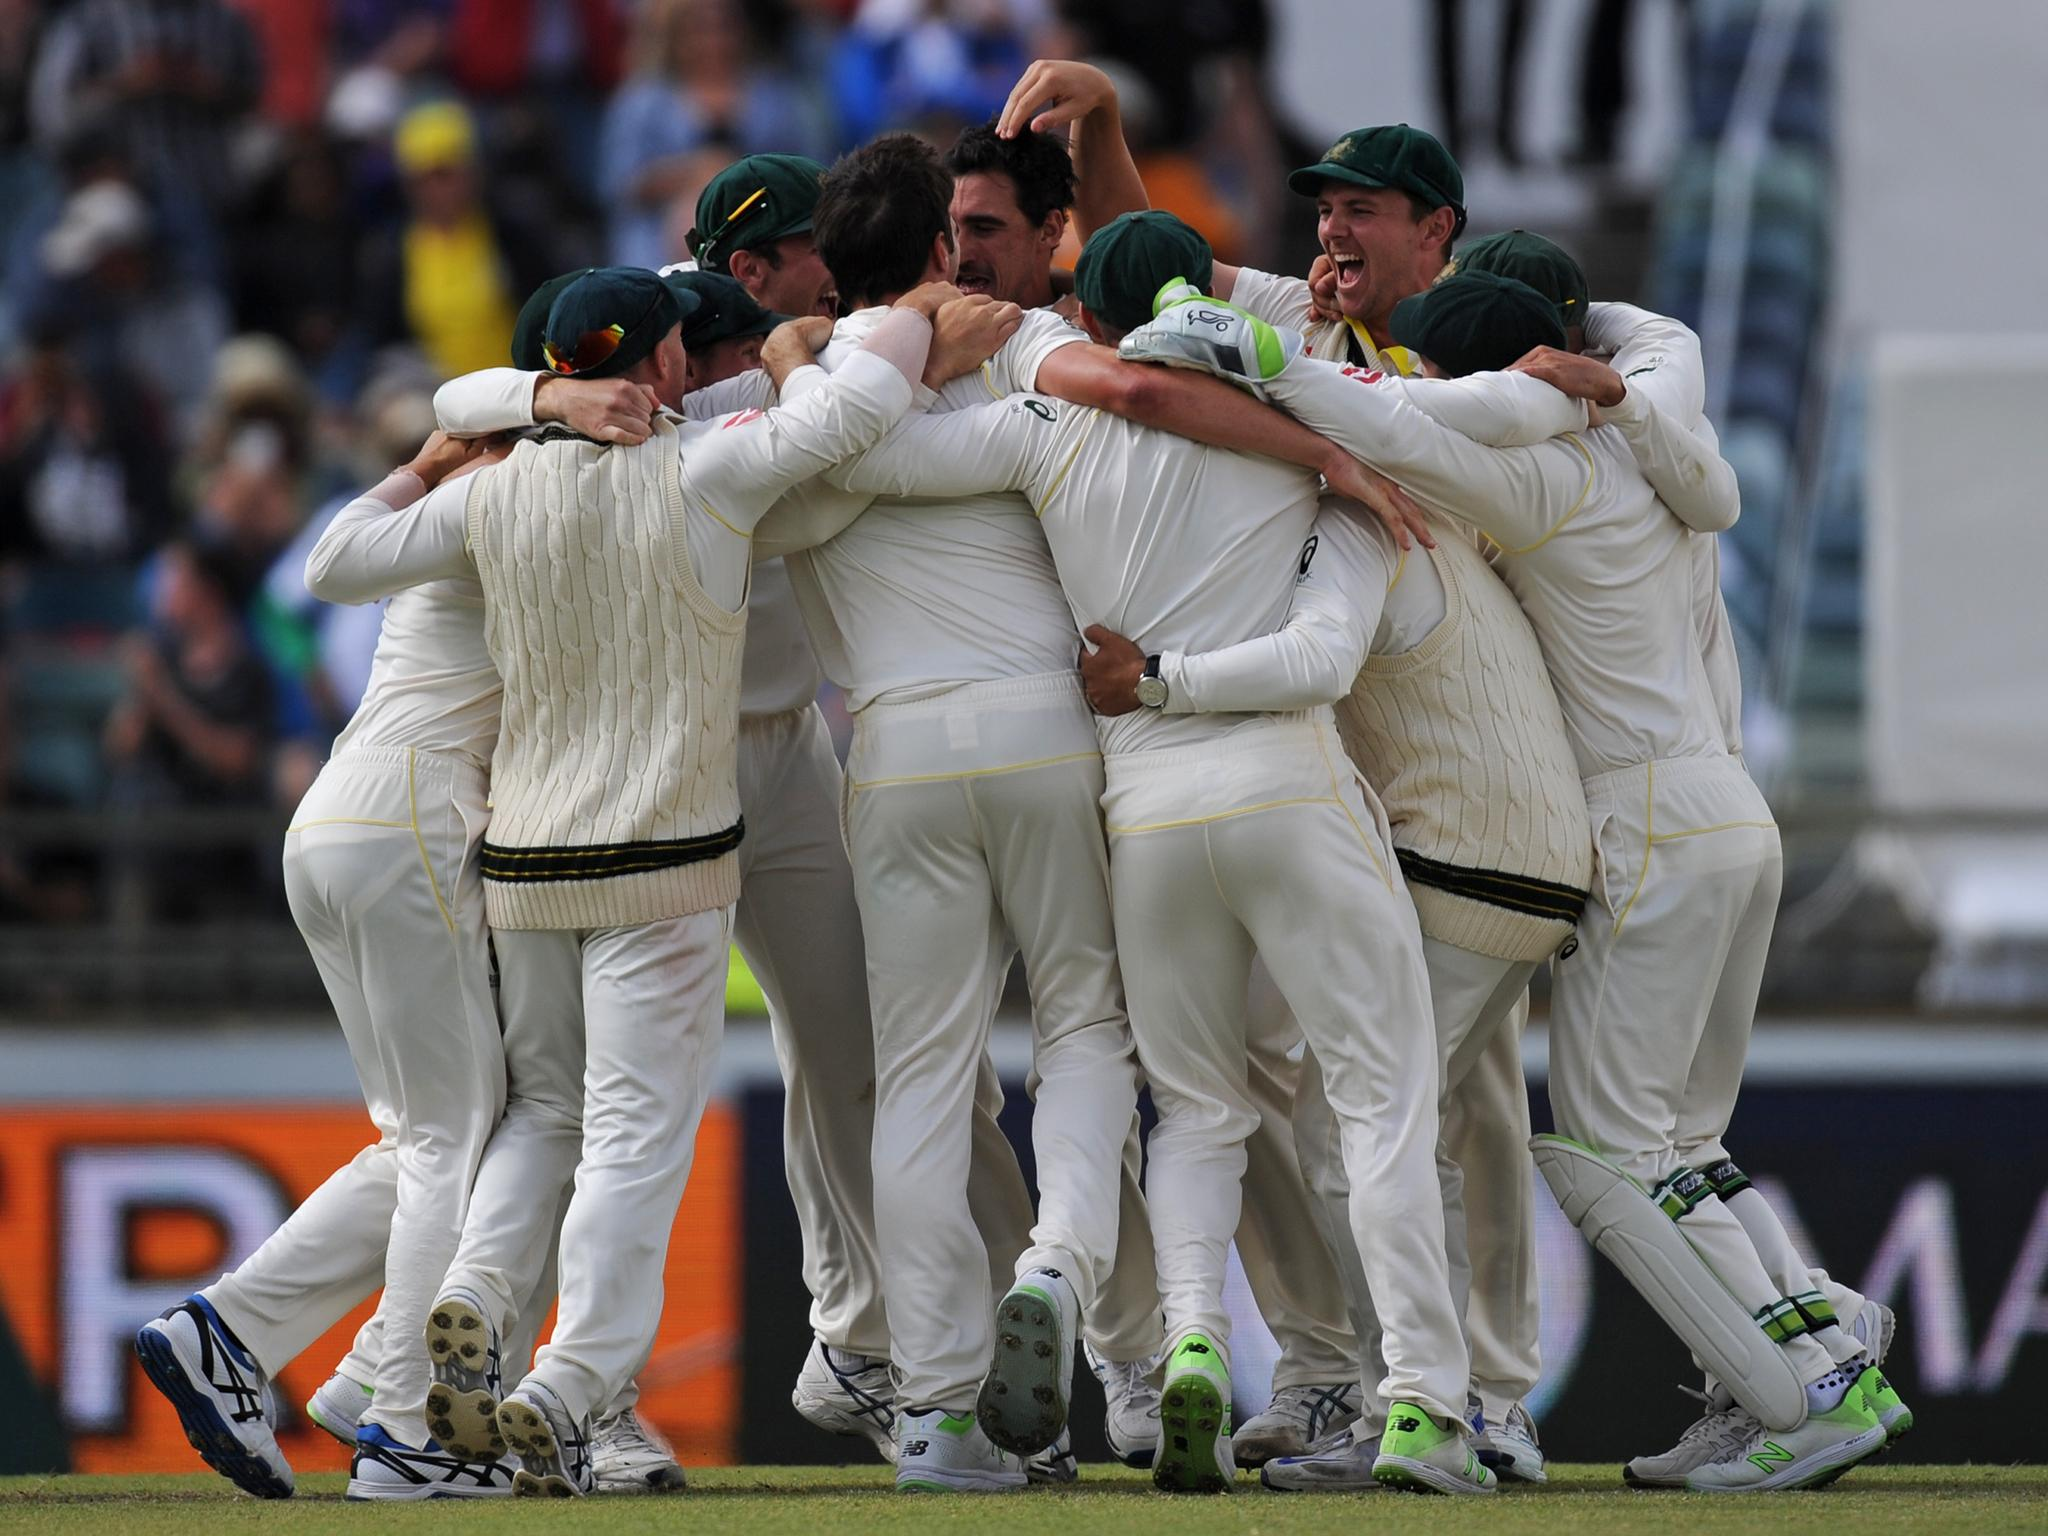 Ashes 2017: England lose series after crushing defeat by Australia in third Test